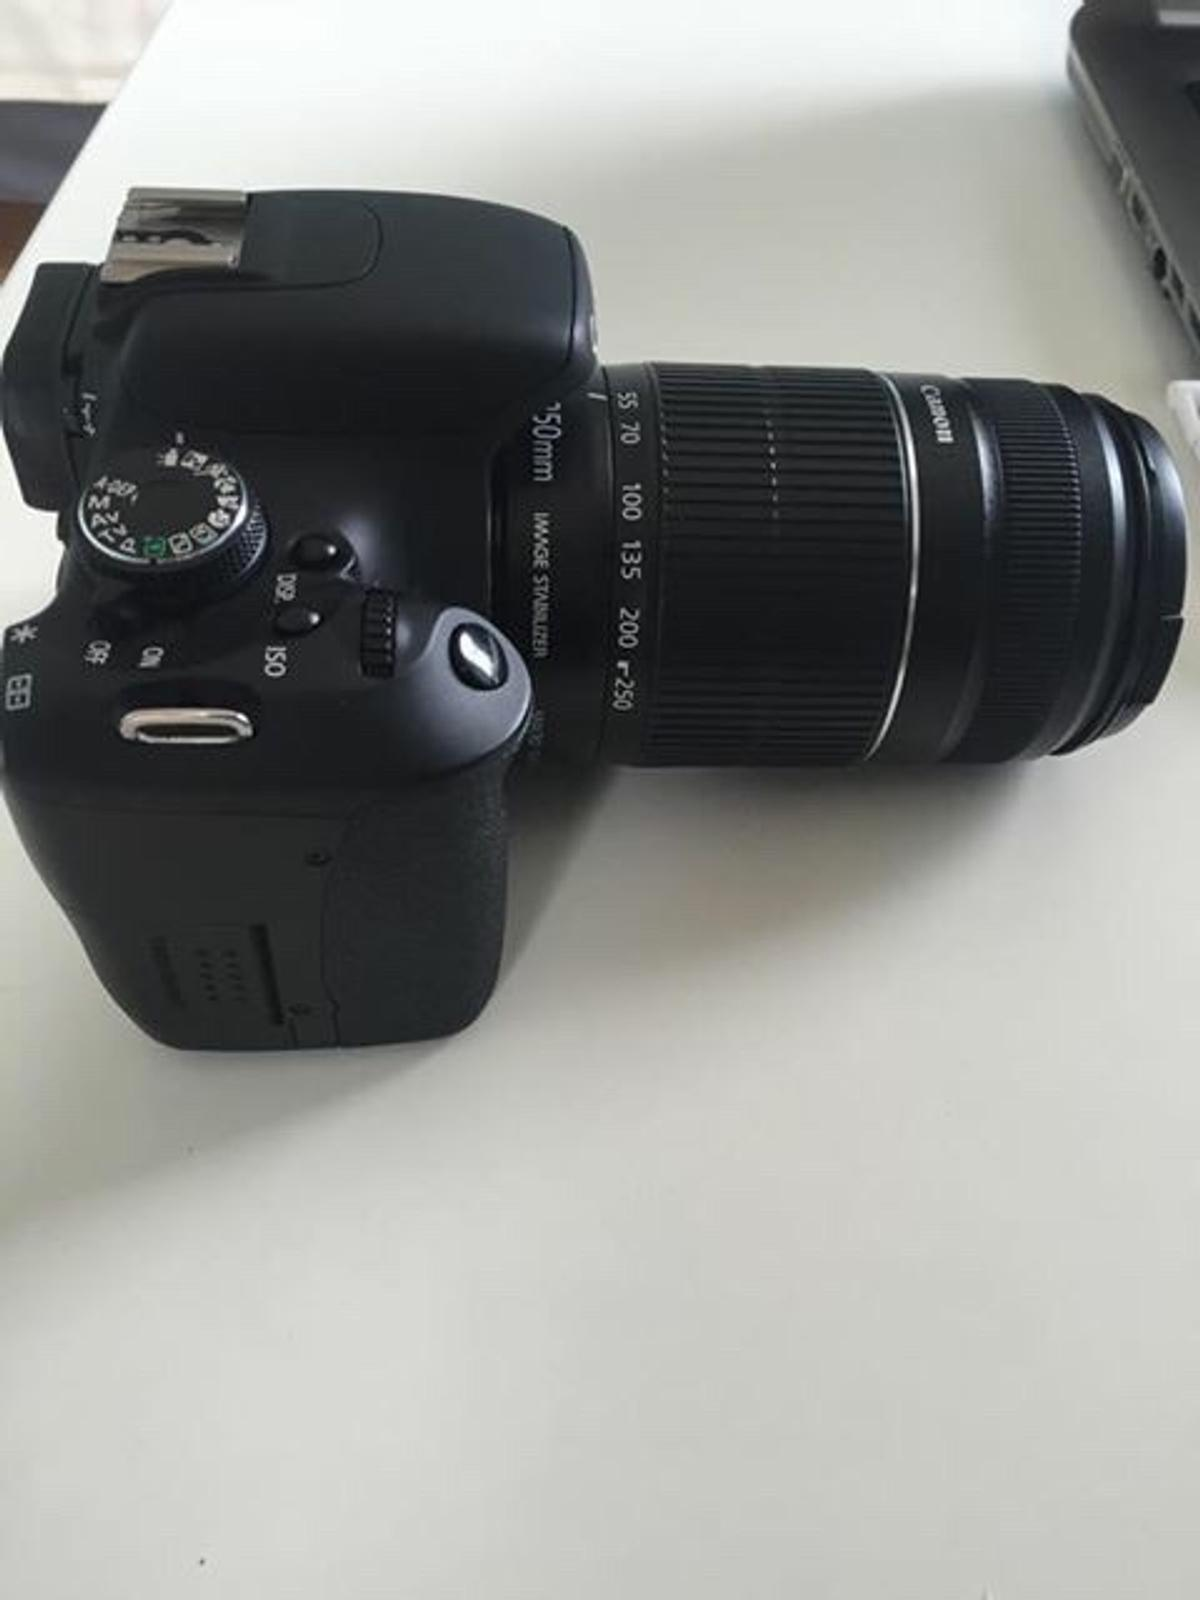 Camera Canon 600D in IG7 London for £320 00 for sale - Shpock